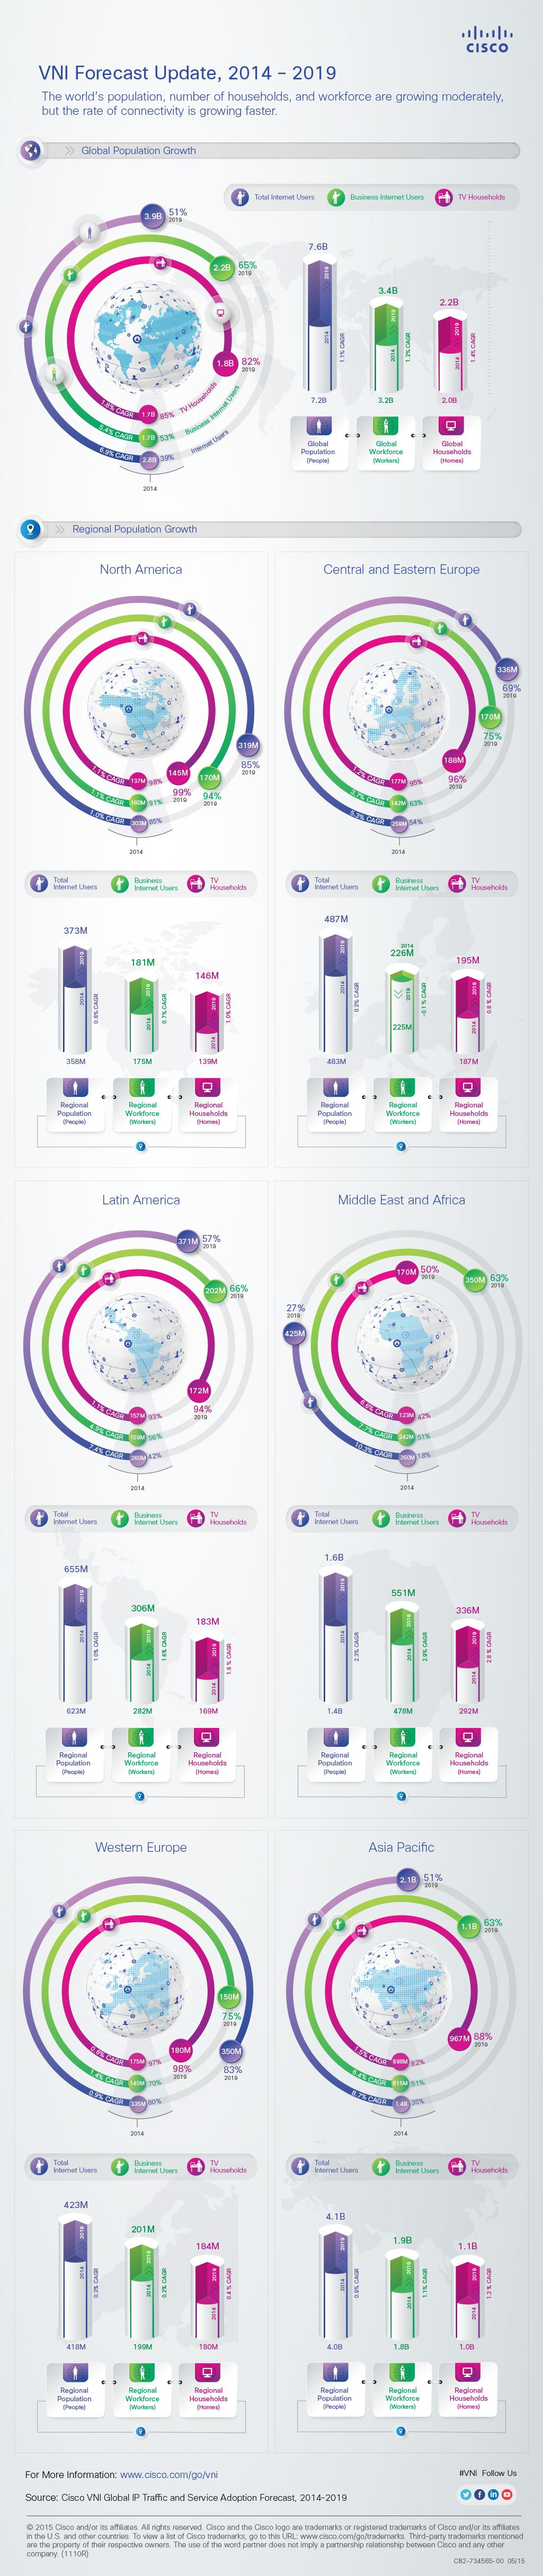 infografik cisco vni forecast 2019